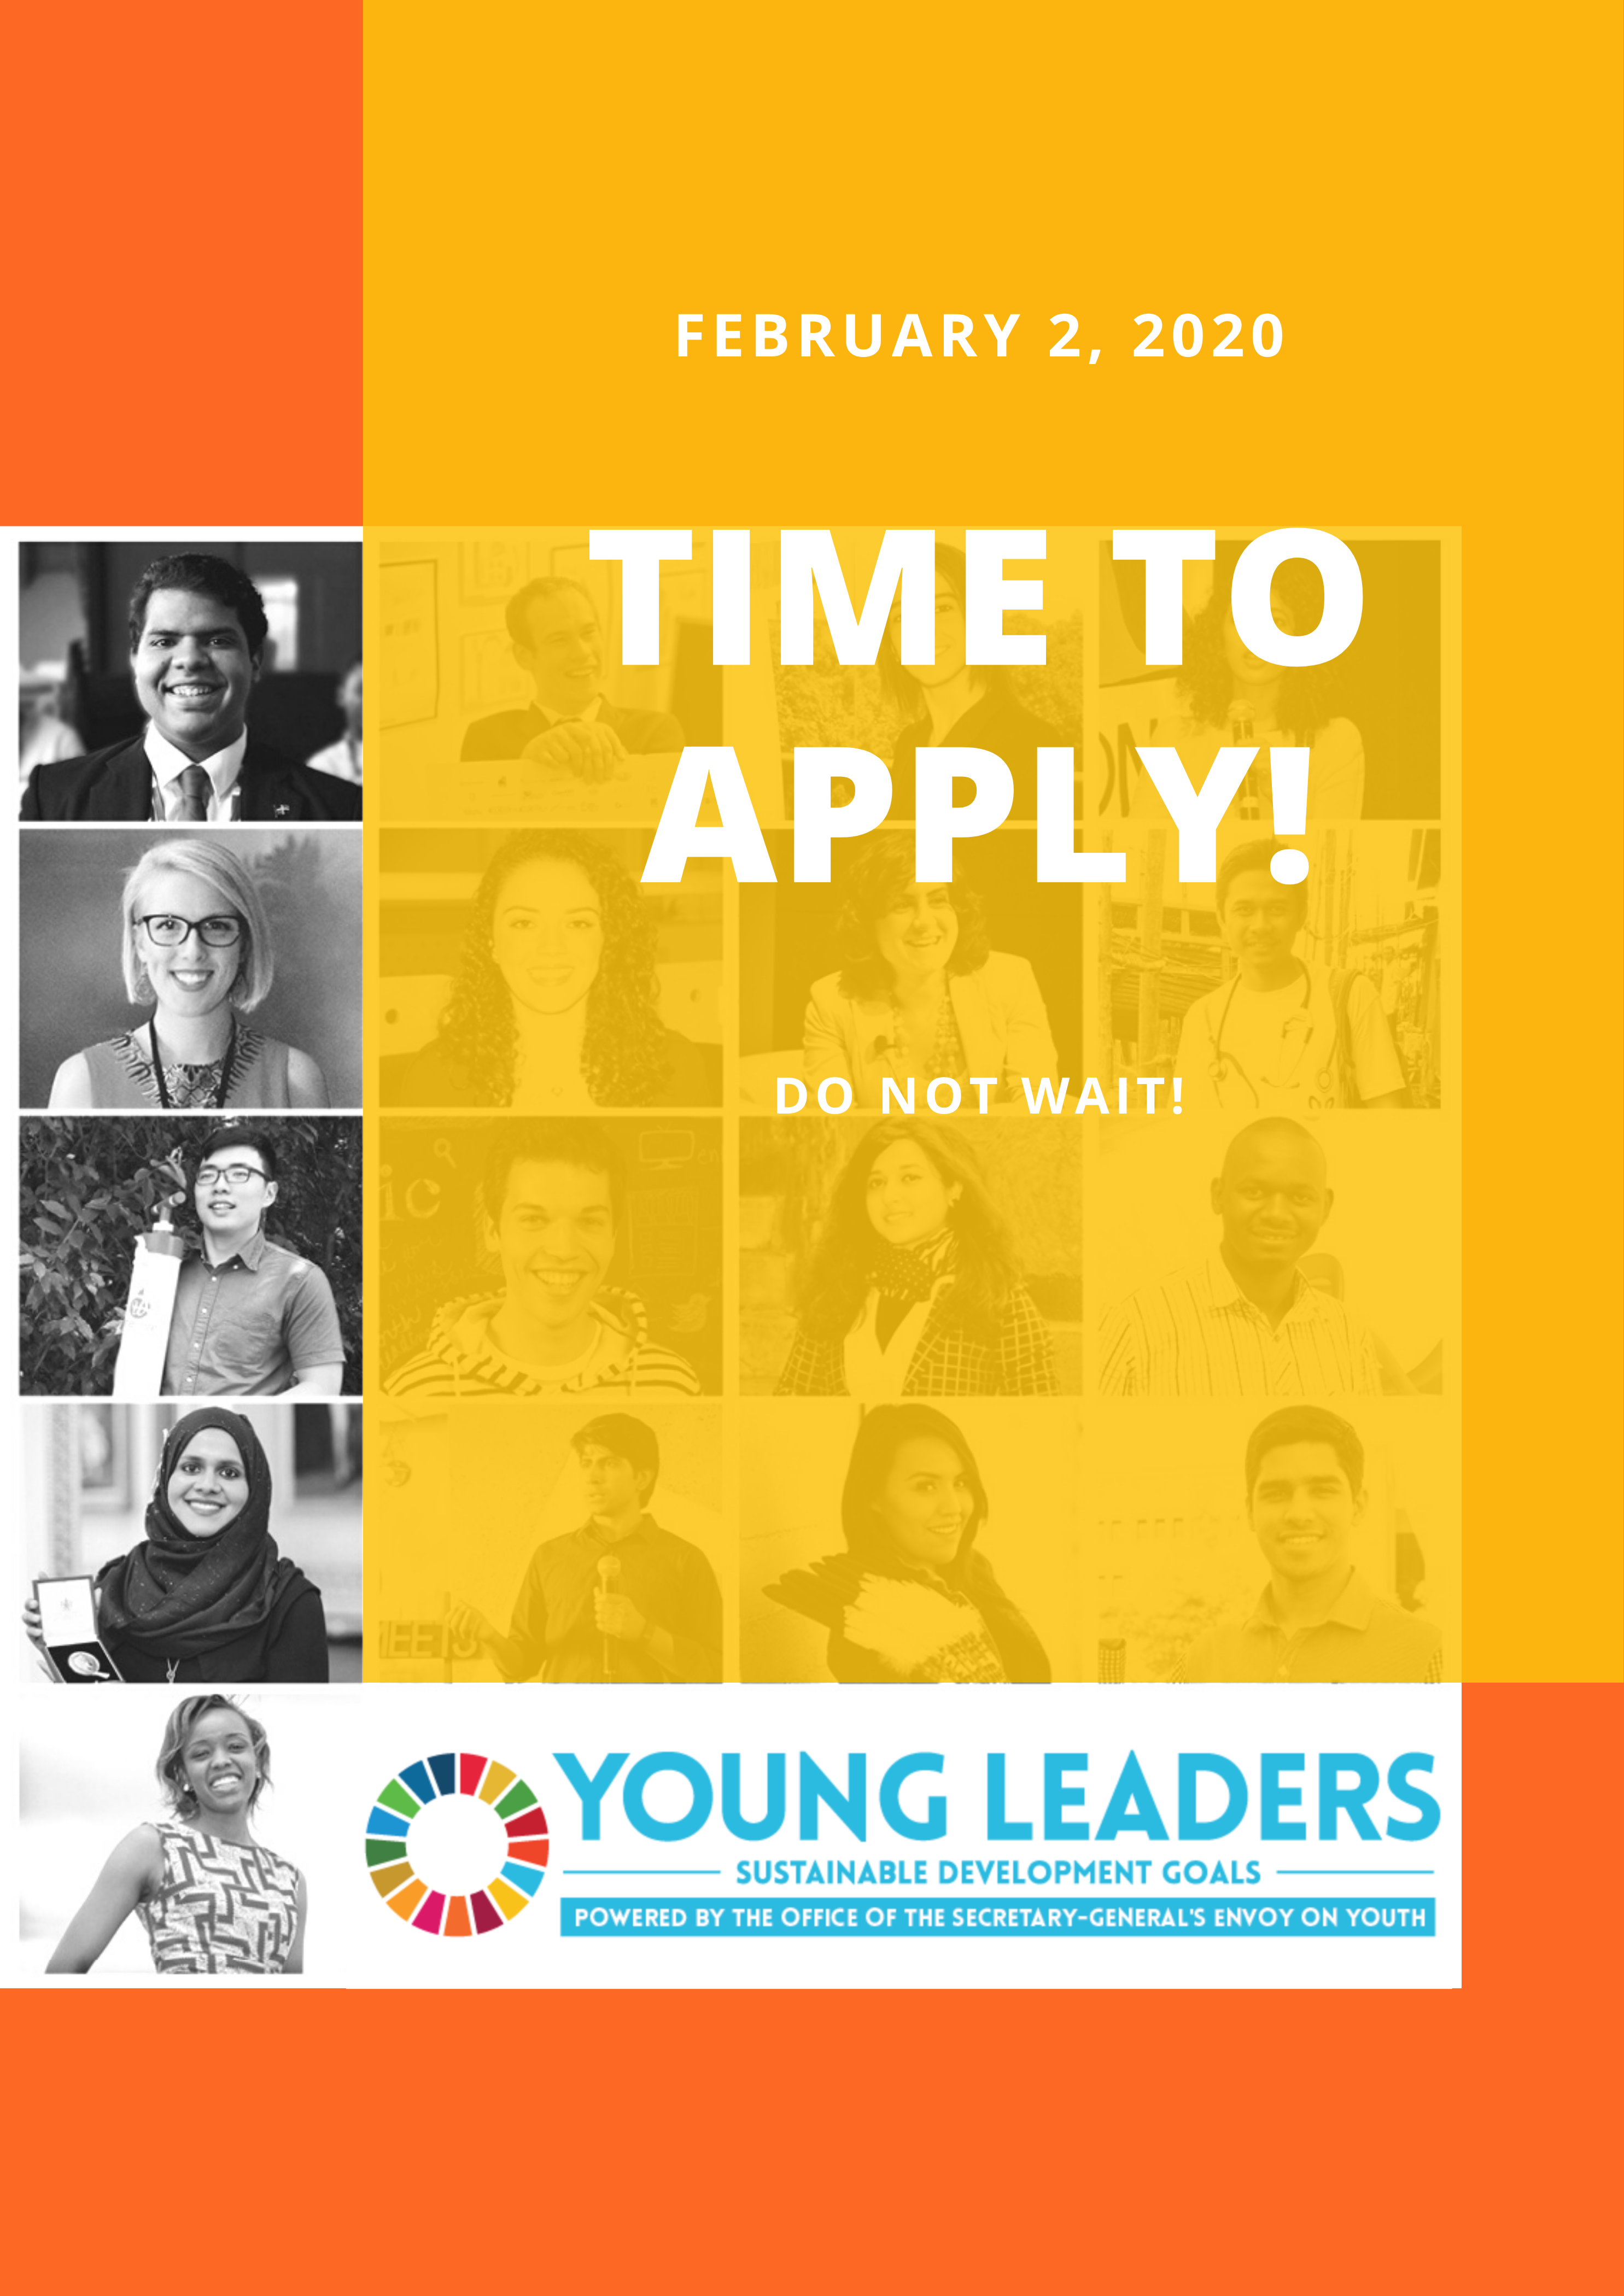 Apply to be a Young Leader!